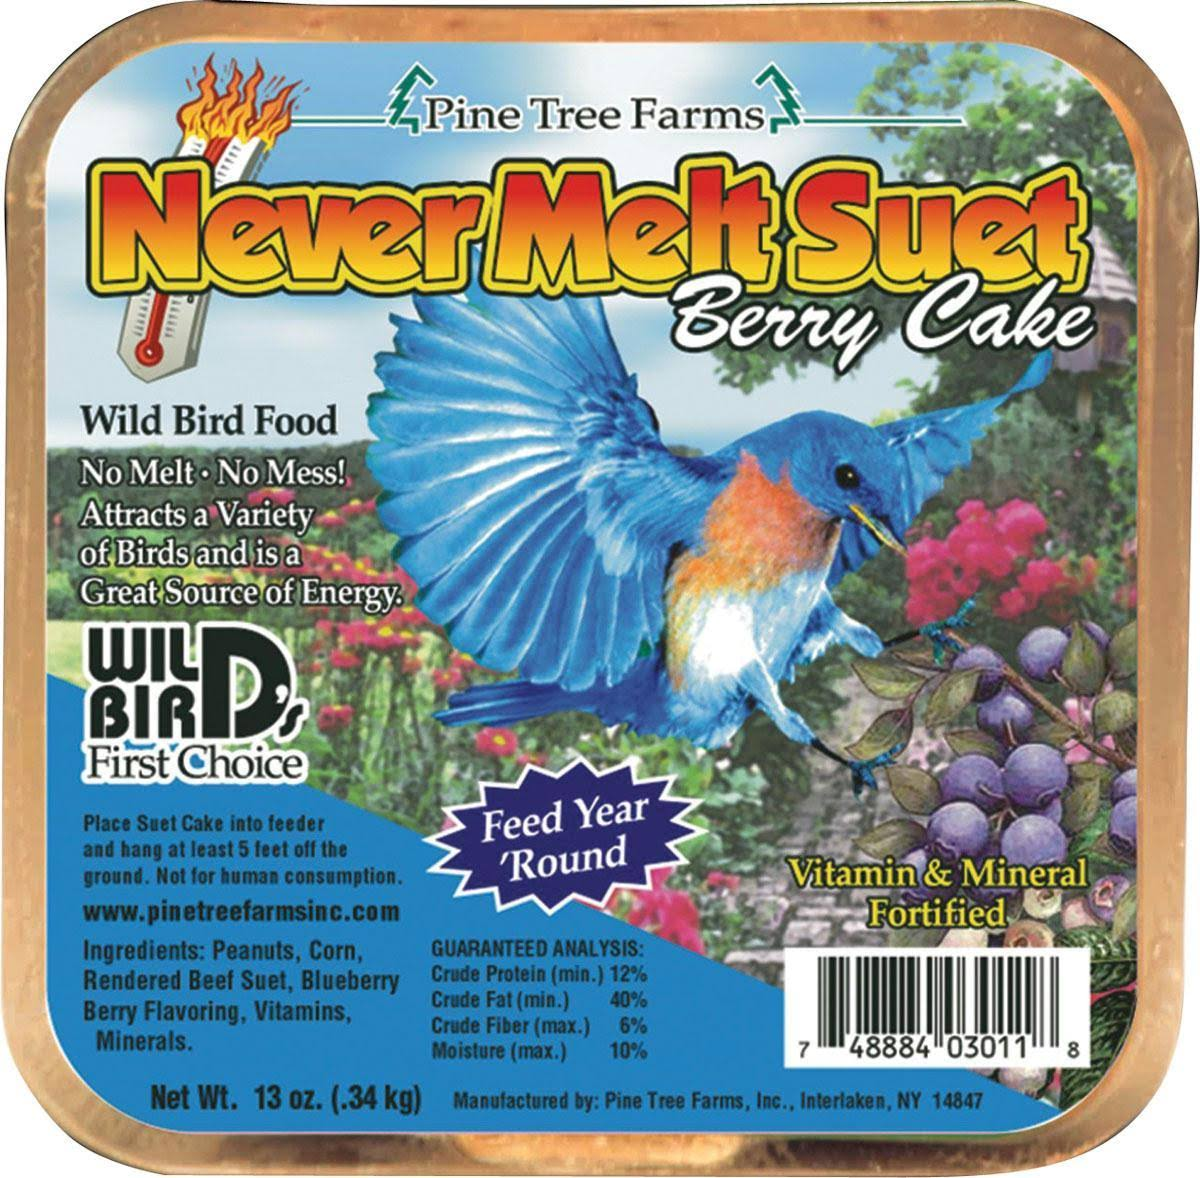 Pine Tree Farms Never Melt Suet Berry Cake - 12oz